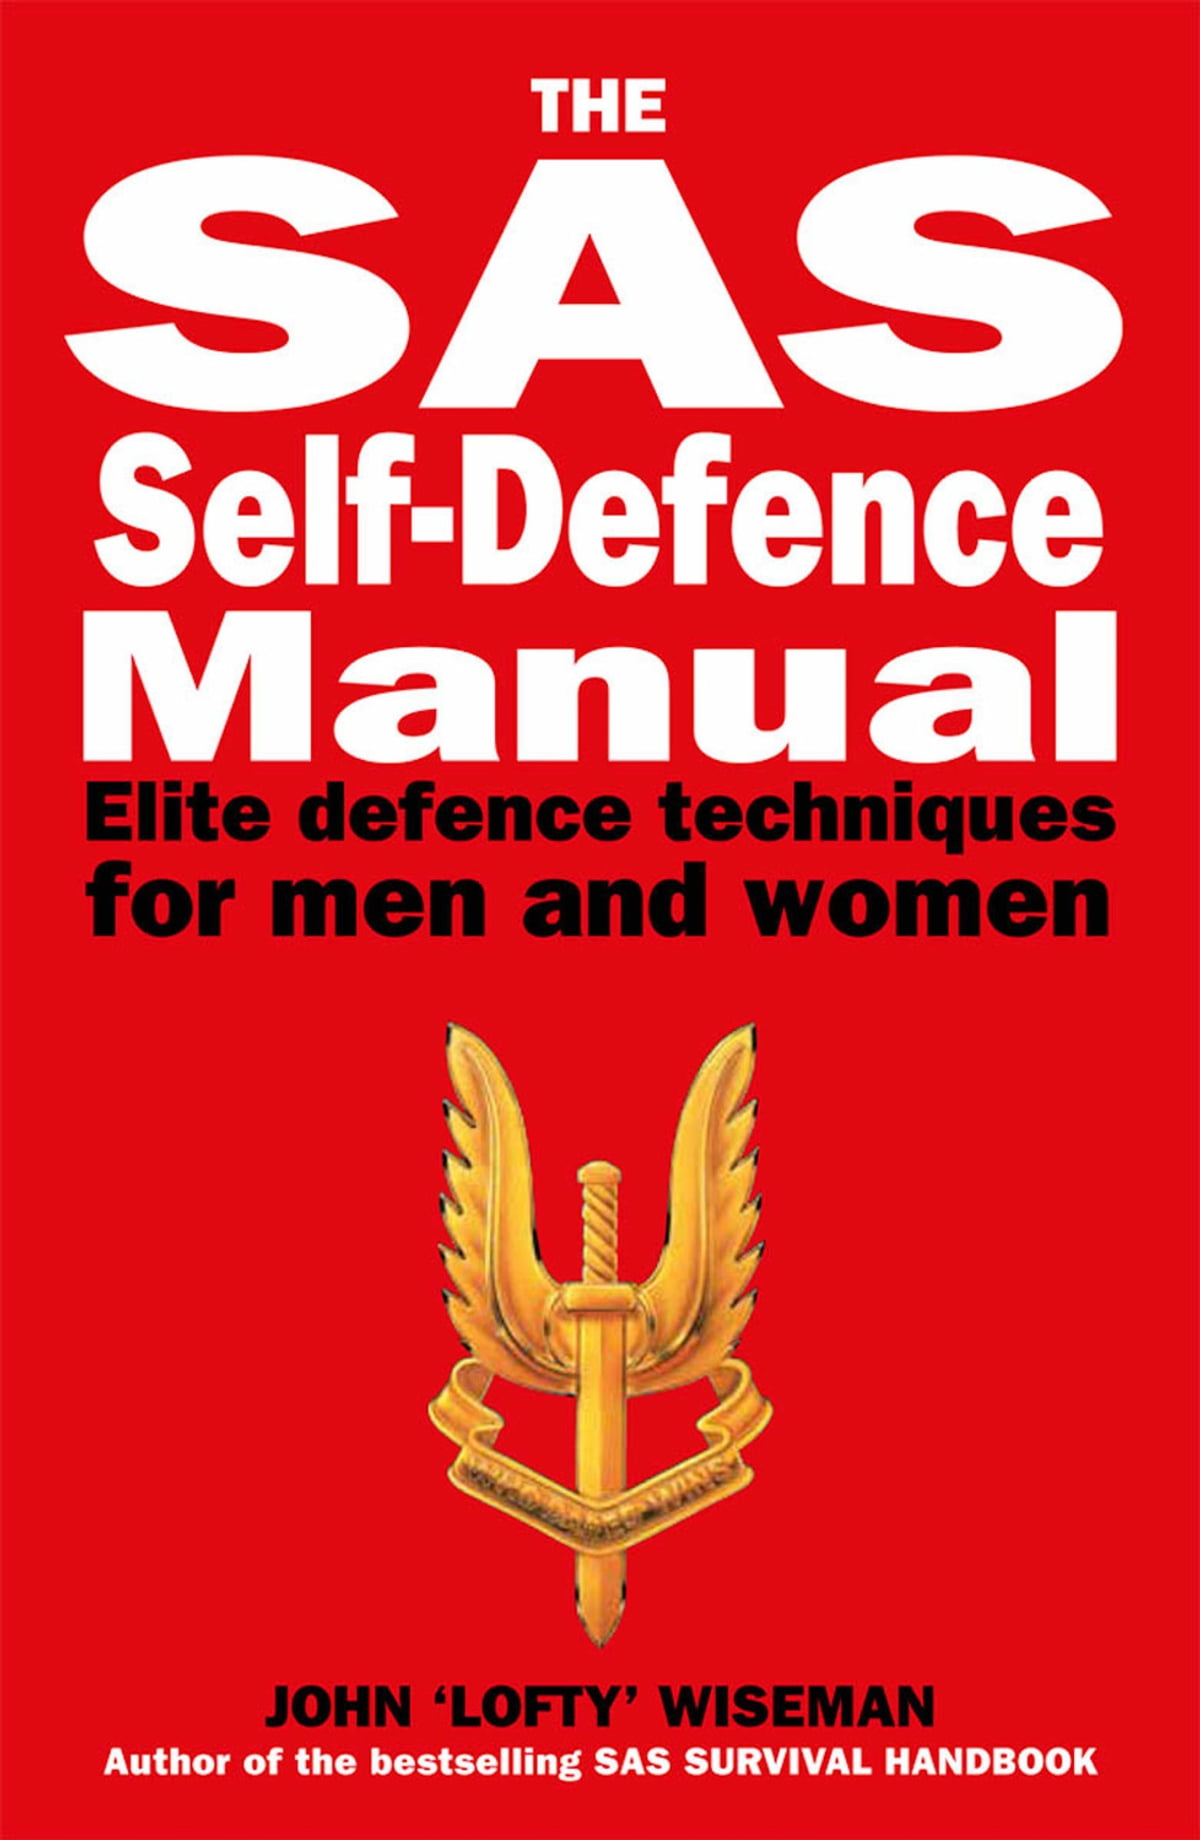 The SAS Self-Defence Manual eBook by John 'Lofty' Wiseman - 9781782743453 |  Rakuten Kobo